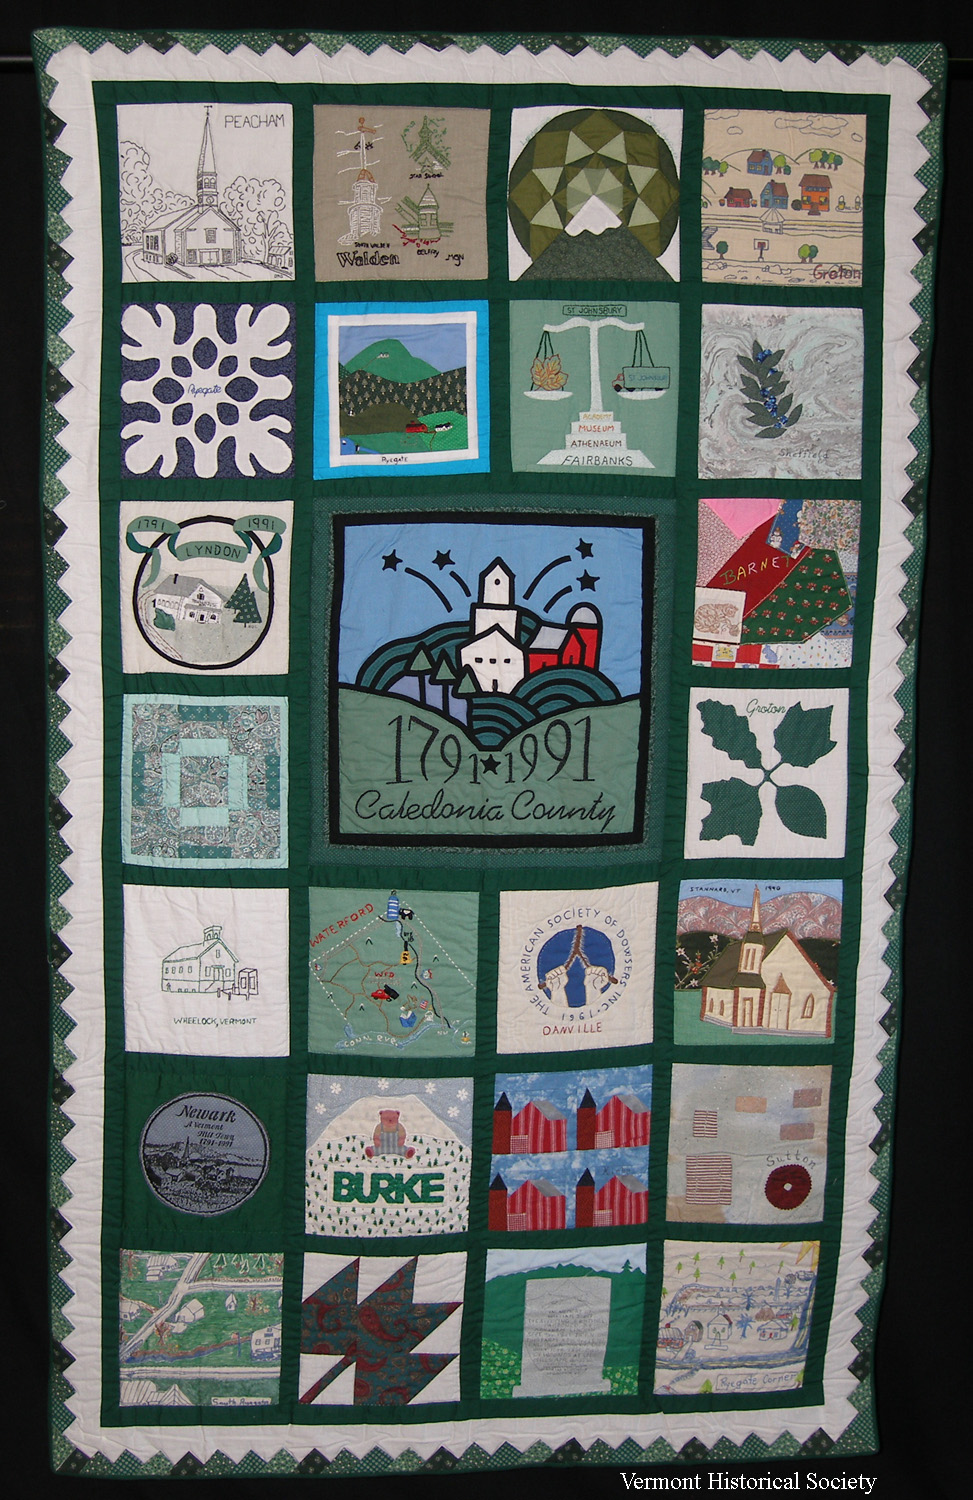 A patchwork quilt showing scenes from Vermont.